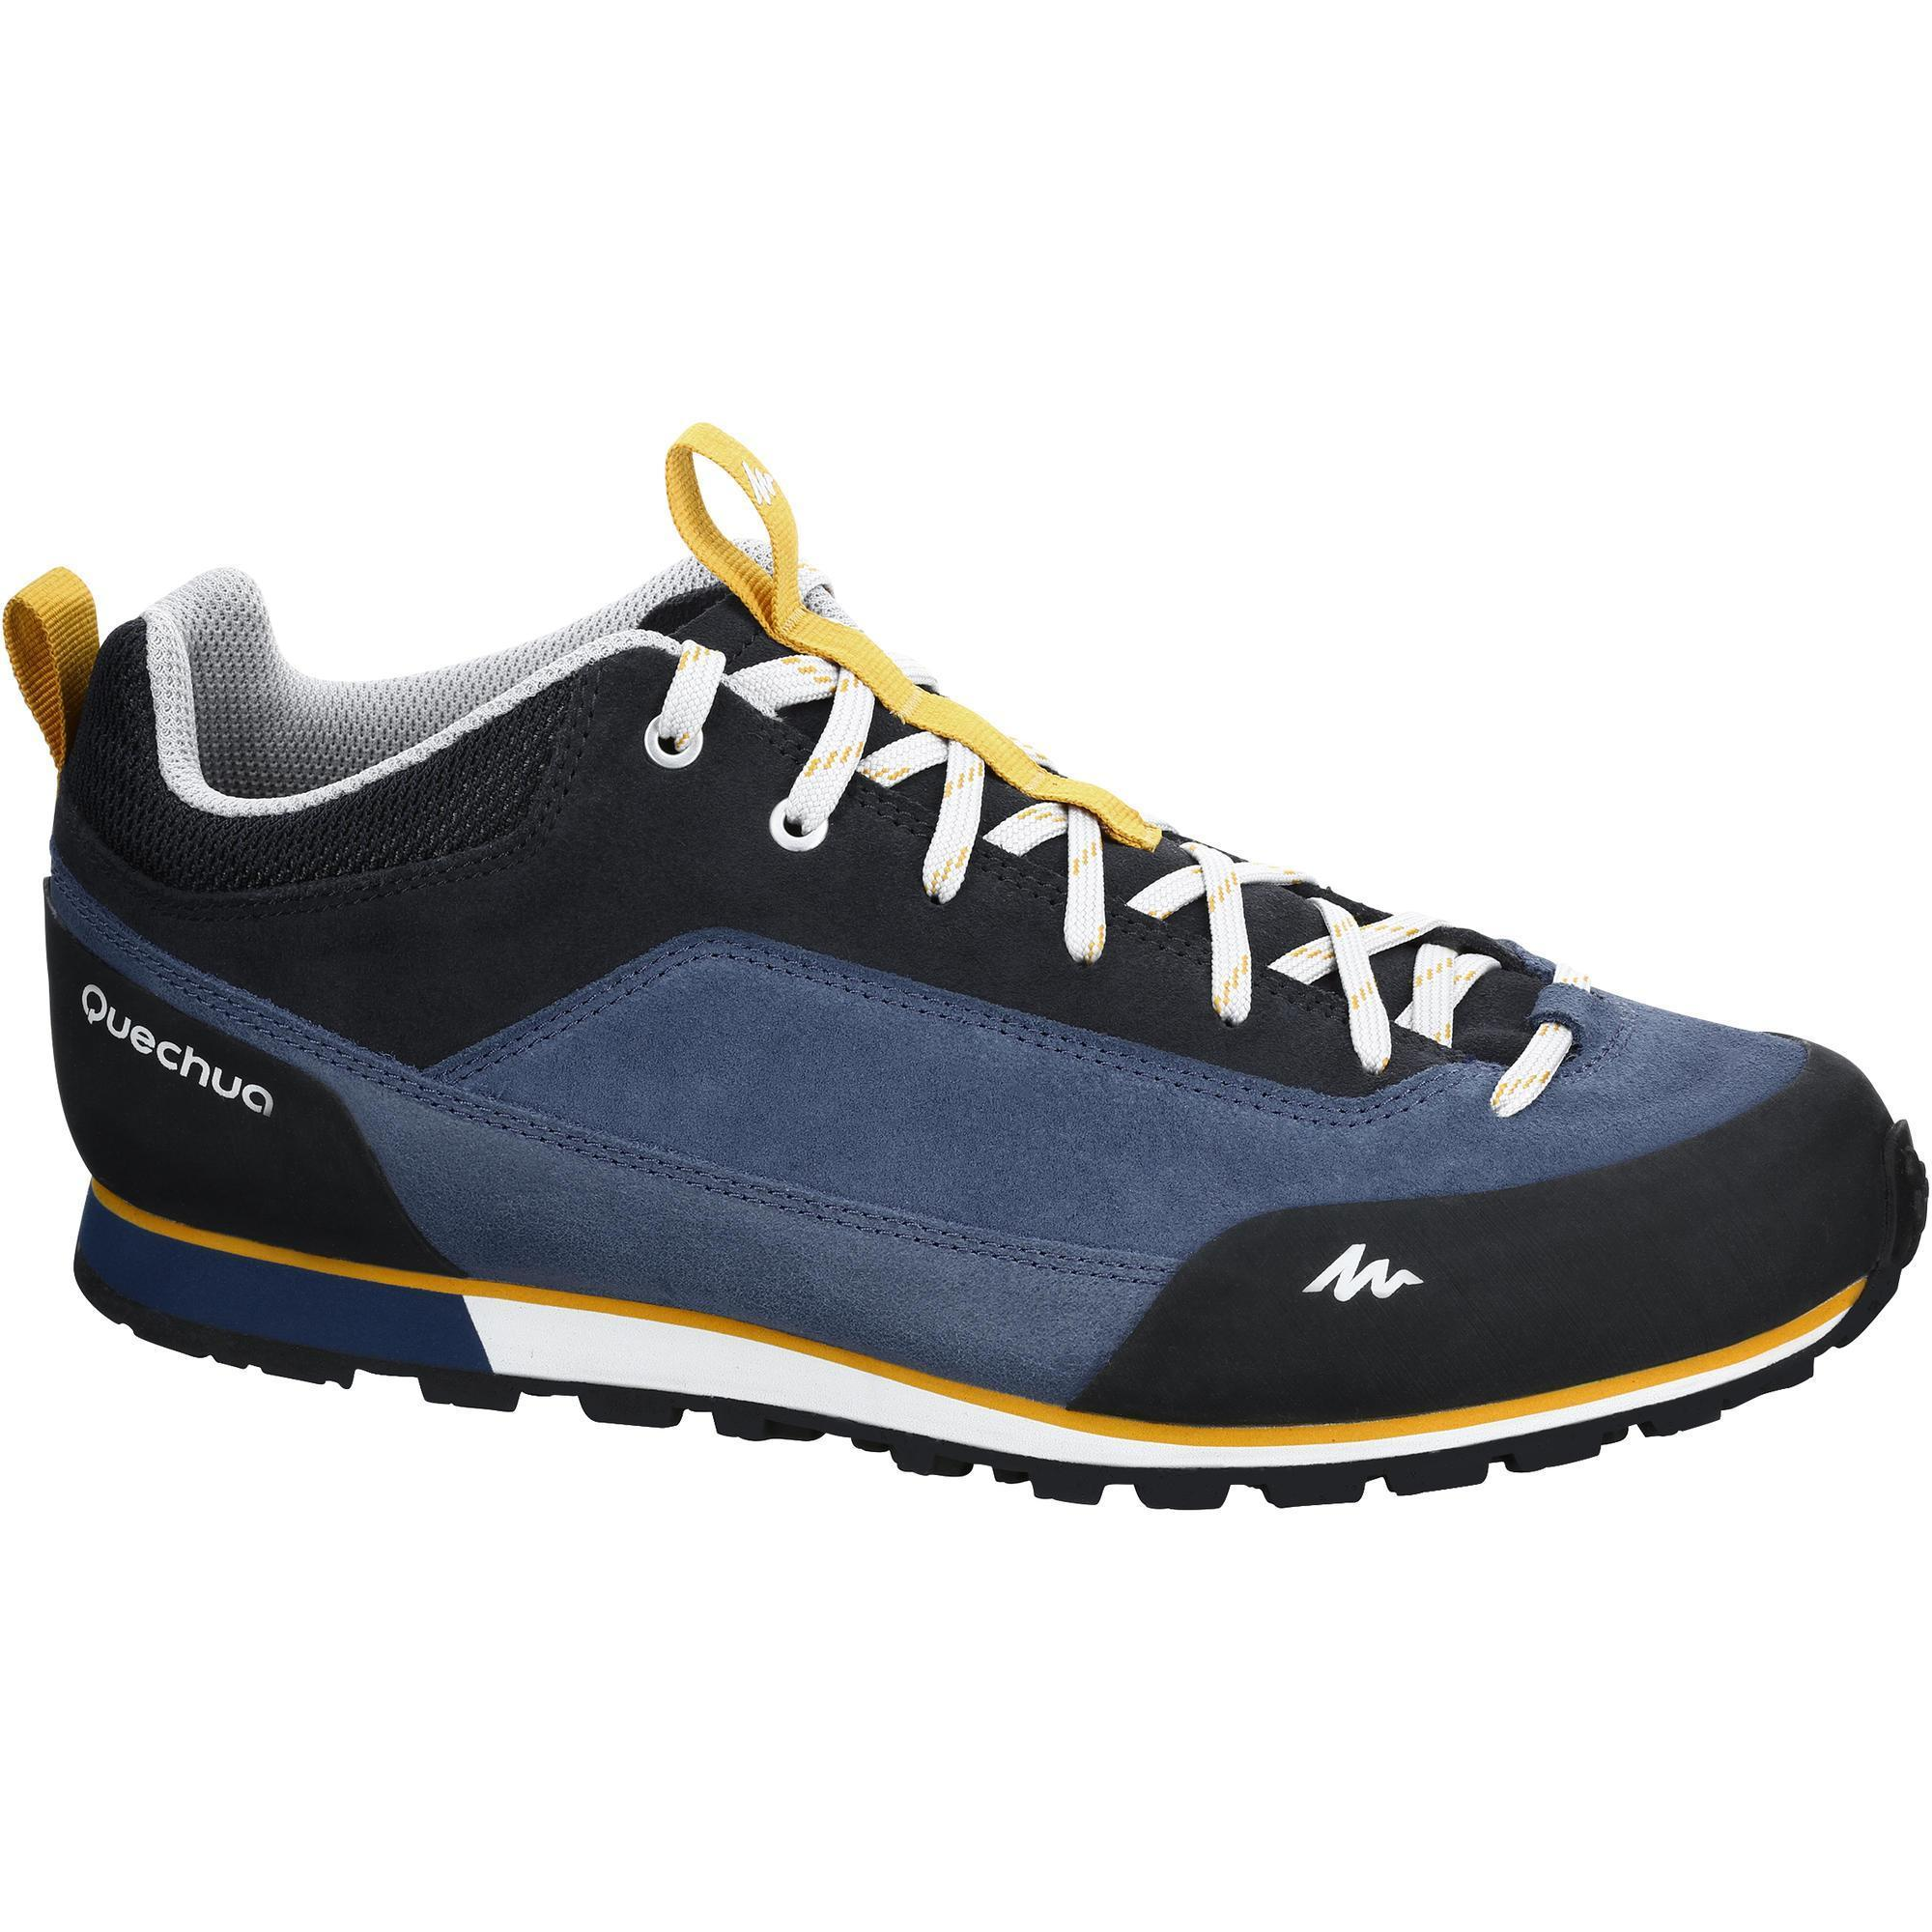 Arpenaz 500 Men S Hiking Shoes Blue Quechua